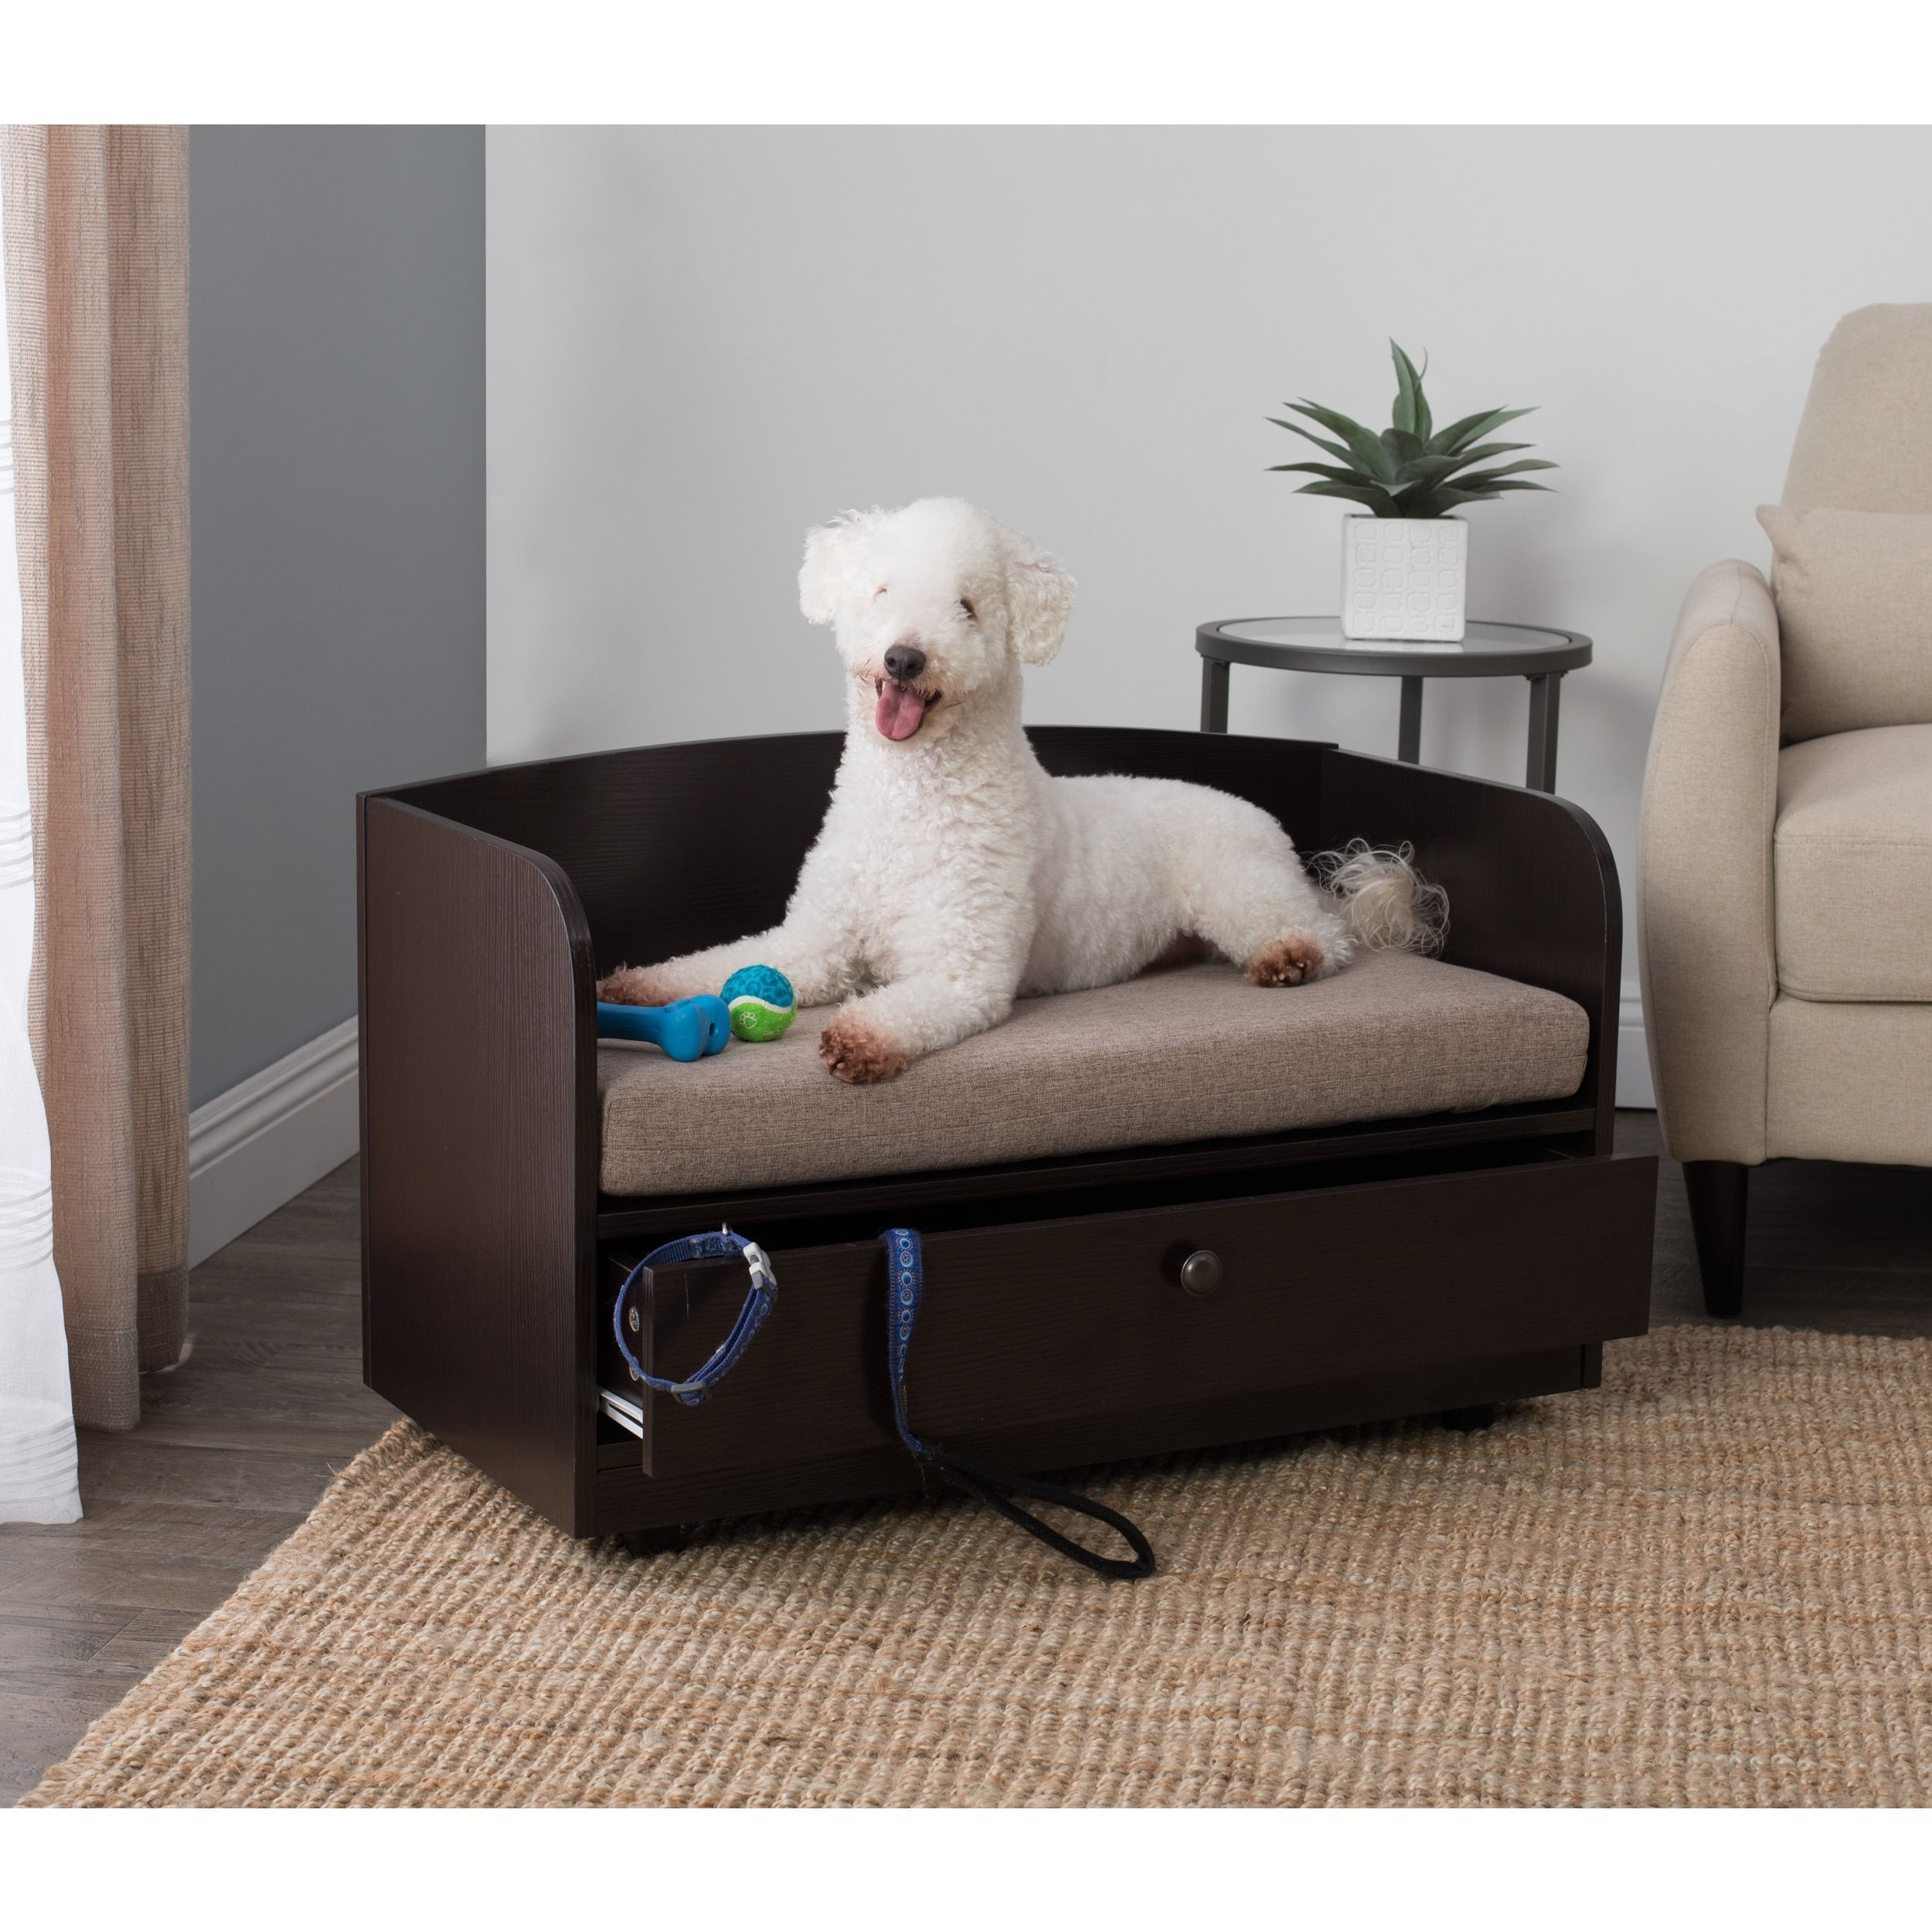 Overstock Com Online Shopping Bedding Furniture Electronics Jewelry Clothing More Pet Sofa Bed Pet Sofa Blanket Dog Bed